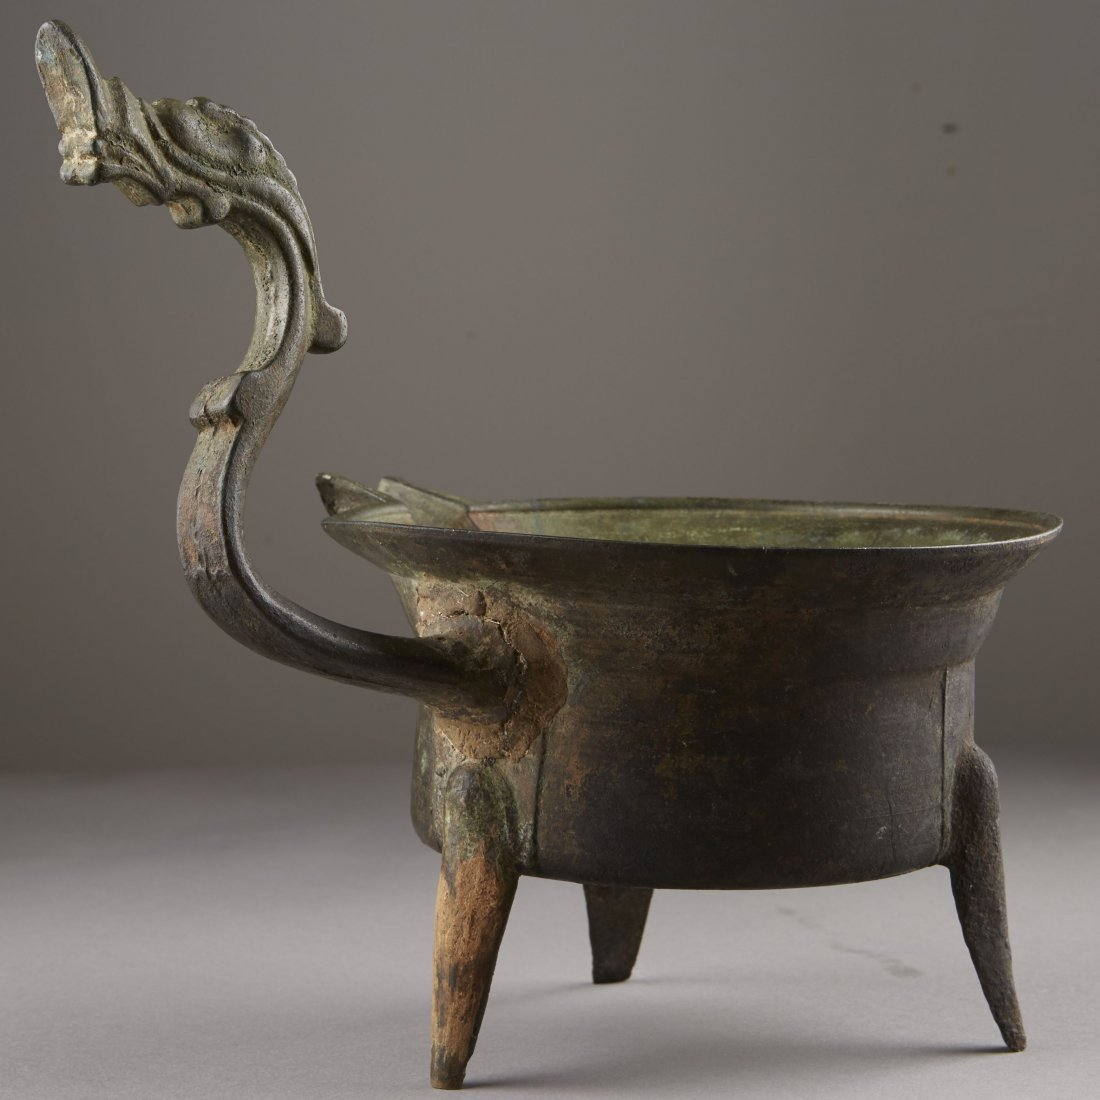 Chinese Bronze Han Dynasty Tripod Cooking Vessel - 3